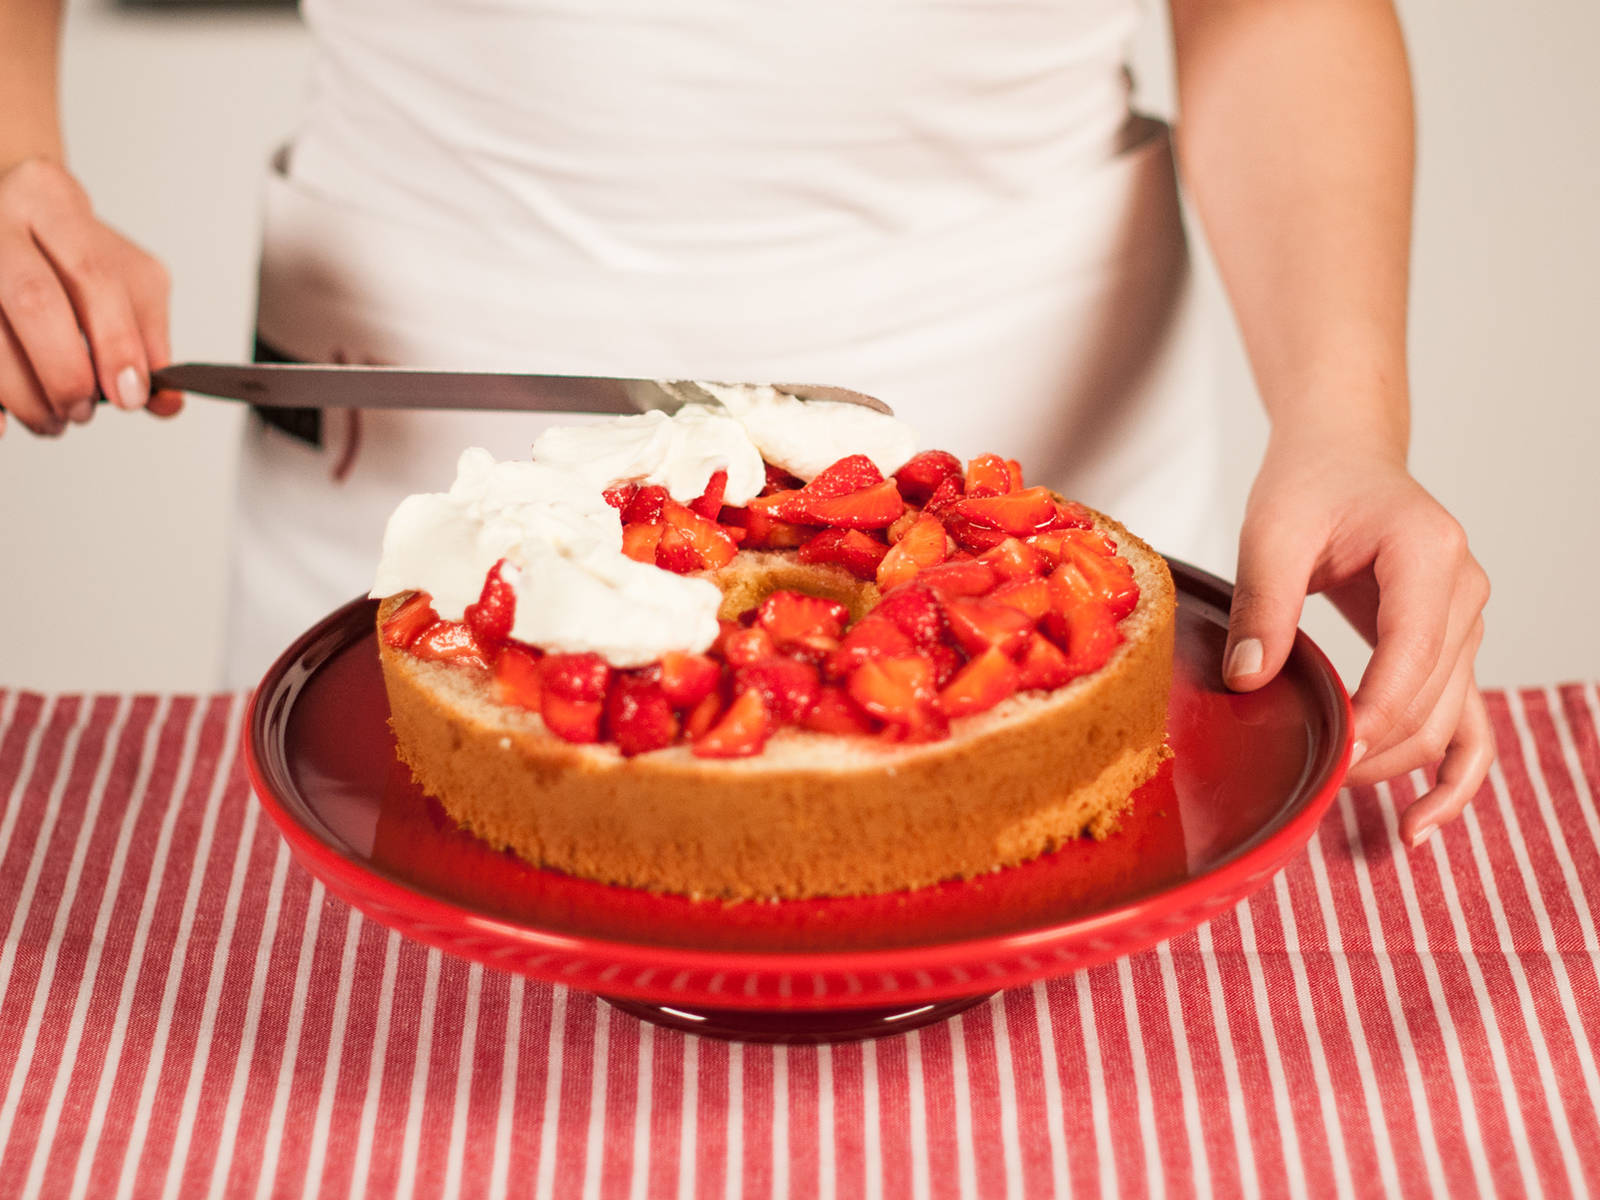 Transfer bottom layer to a cake plate or platter. Spread with half the berries and drizzle with juices. Spread half the whipped cream over berries, then top with middle cake layer.